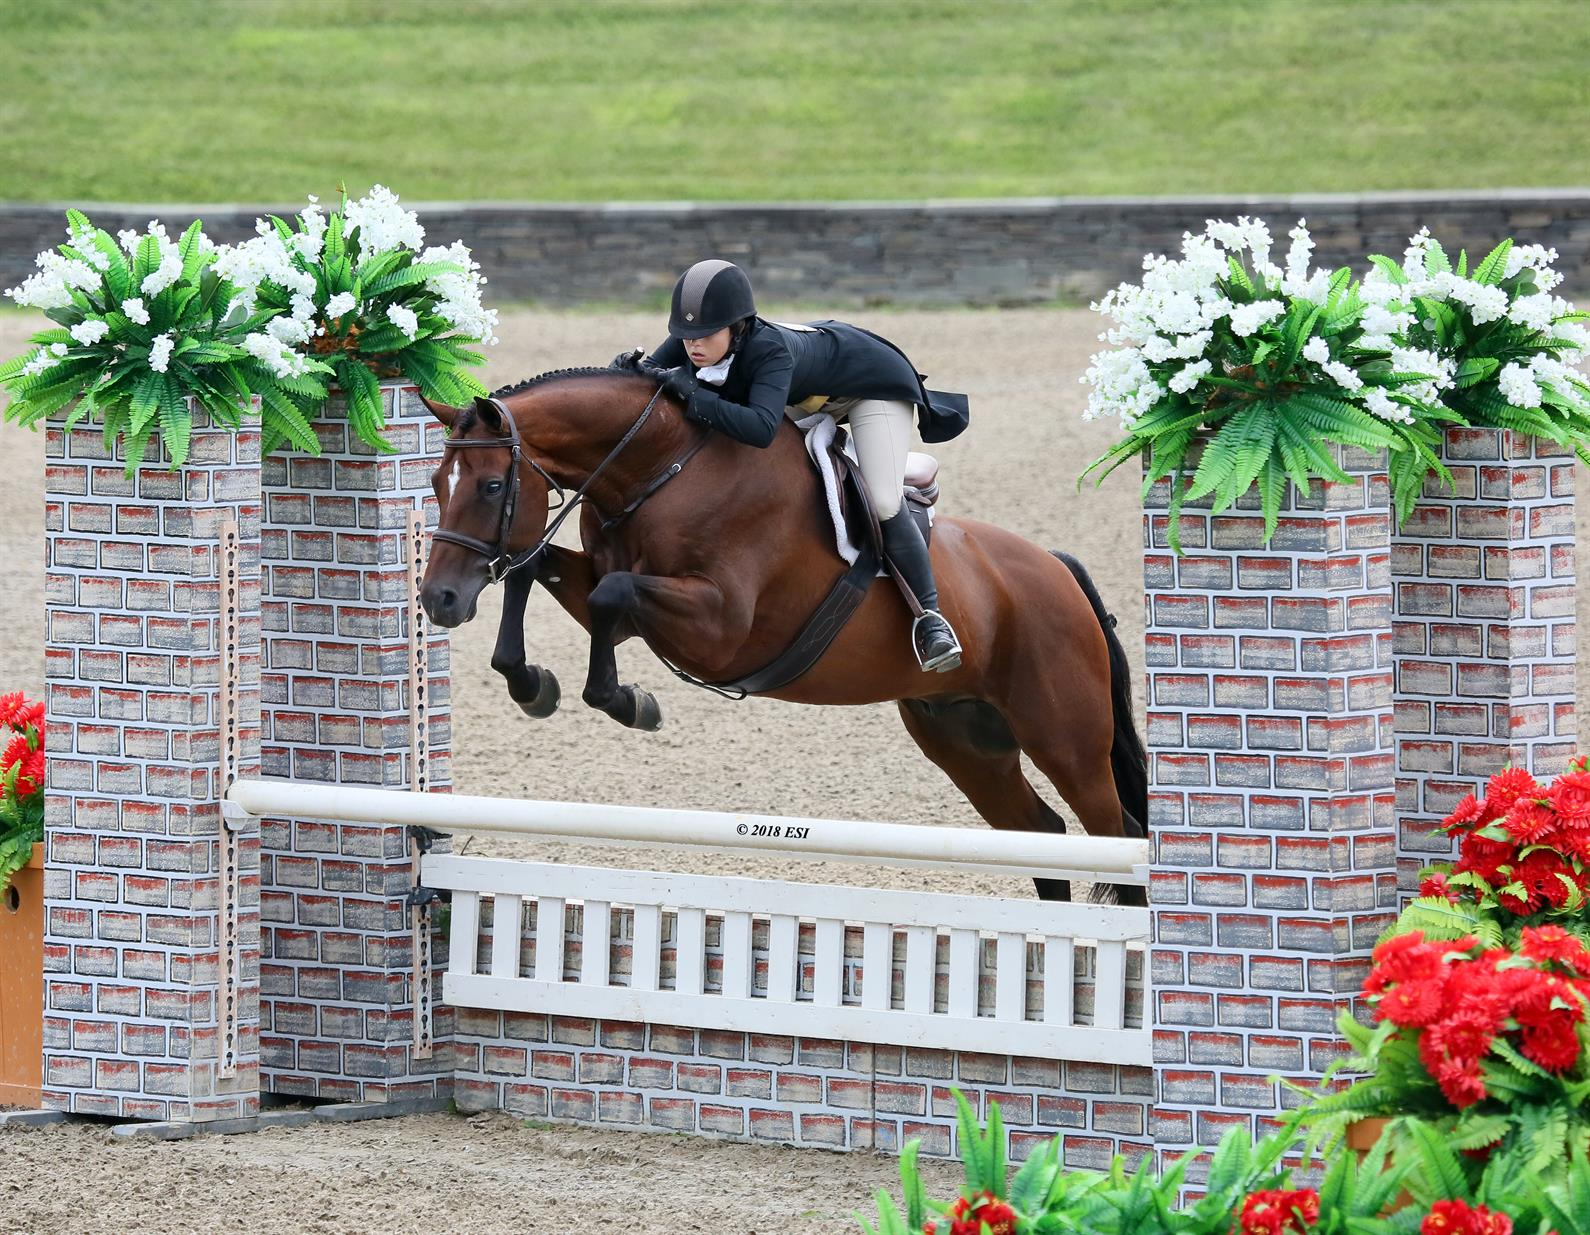 Us Equestrian Announces Dates And Locations For 2019 Usef